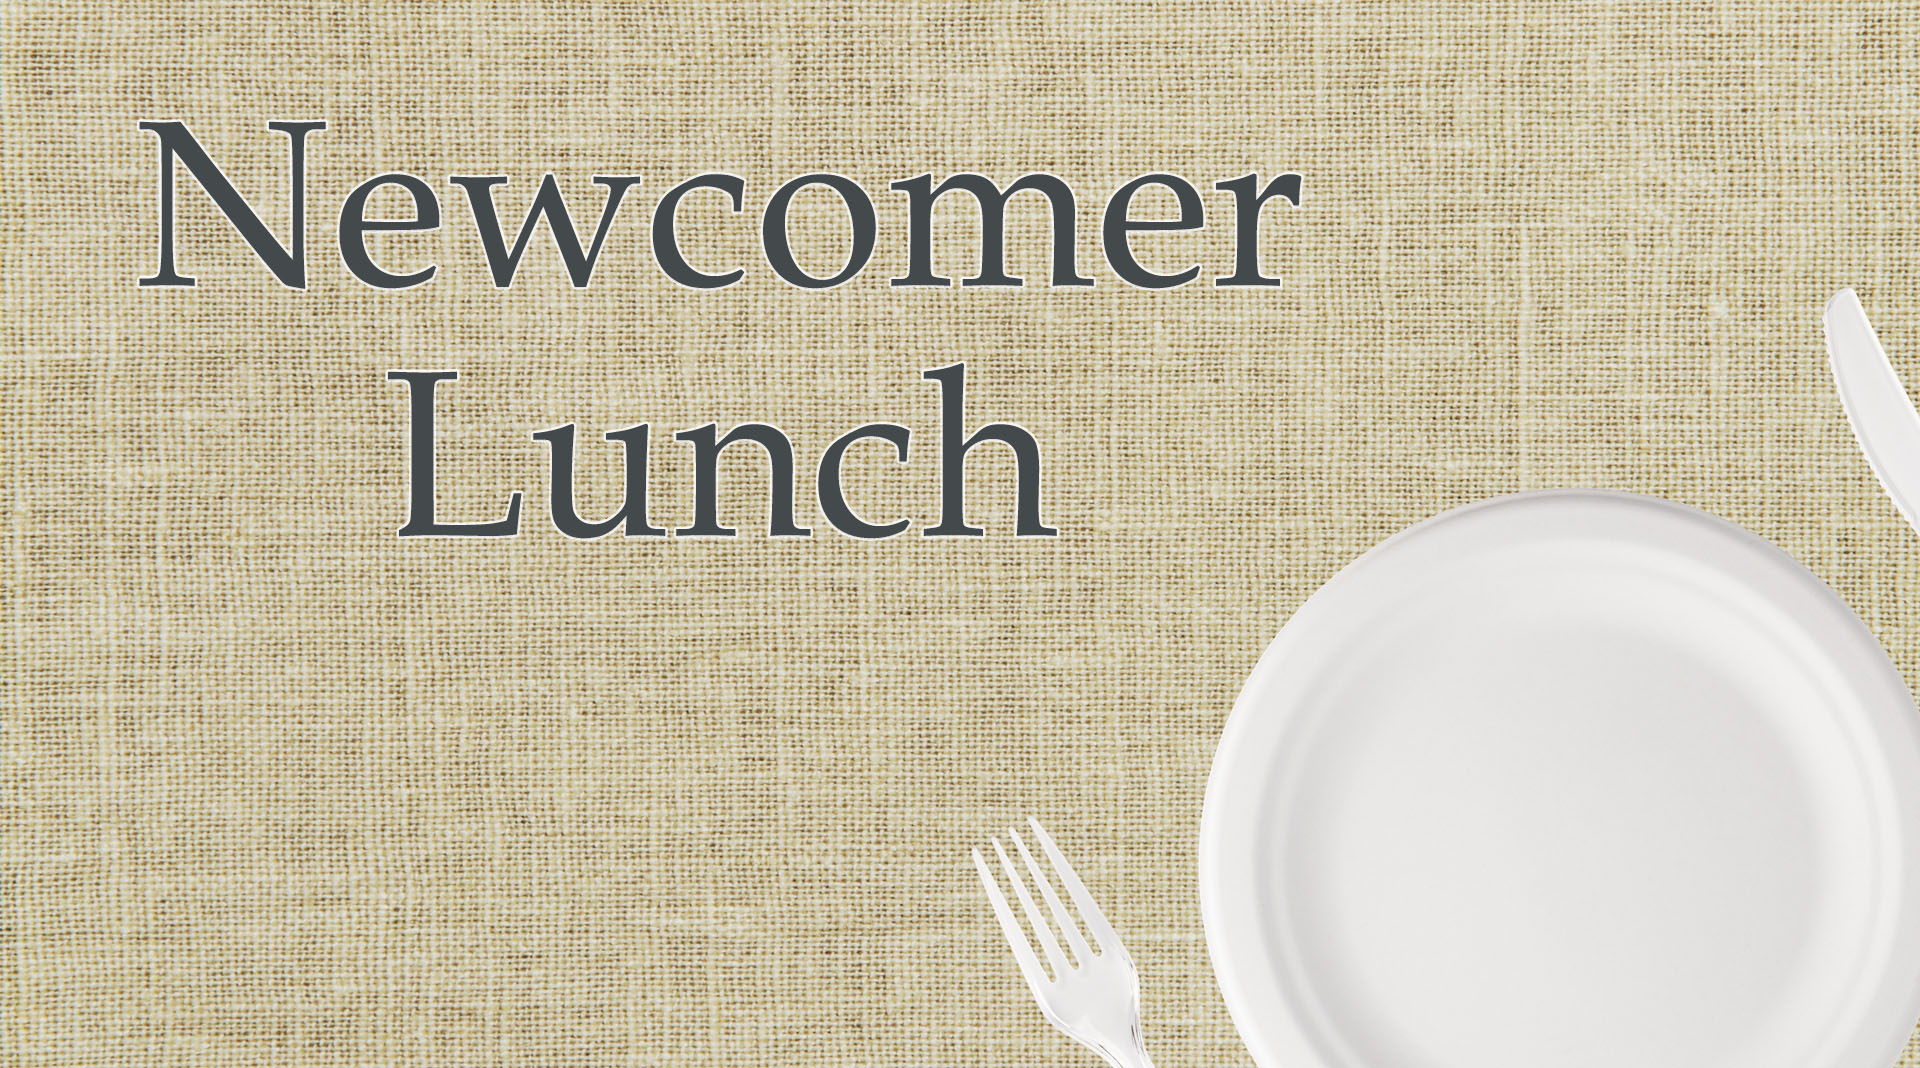 Newcomer lunch for registrations